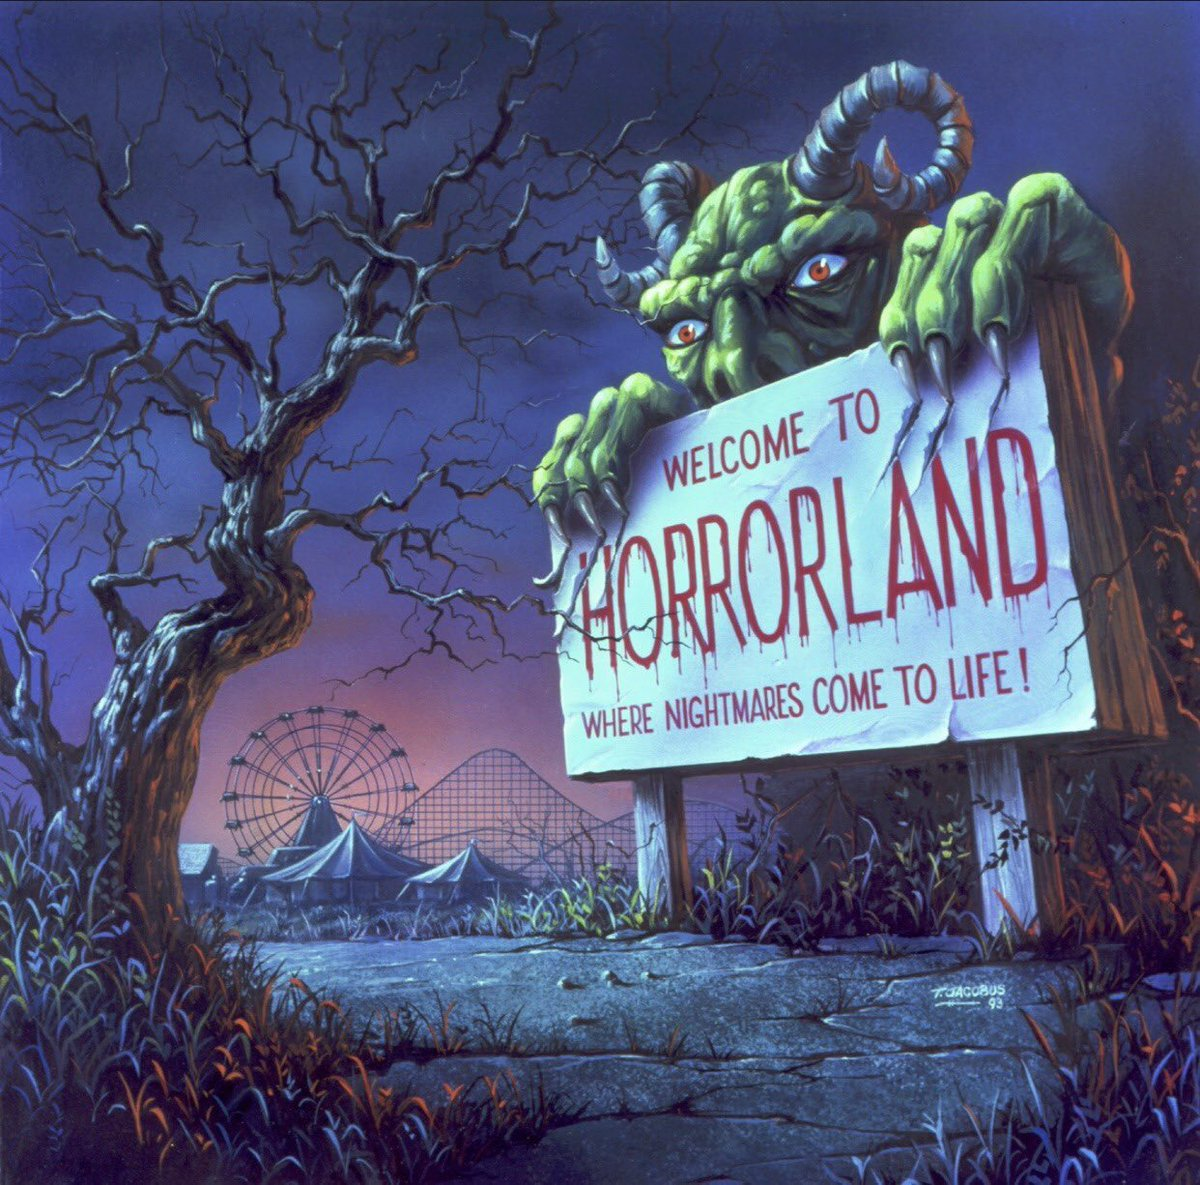 the theme parks MUST reopen